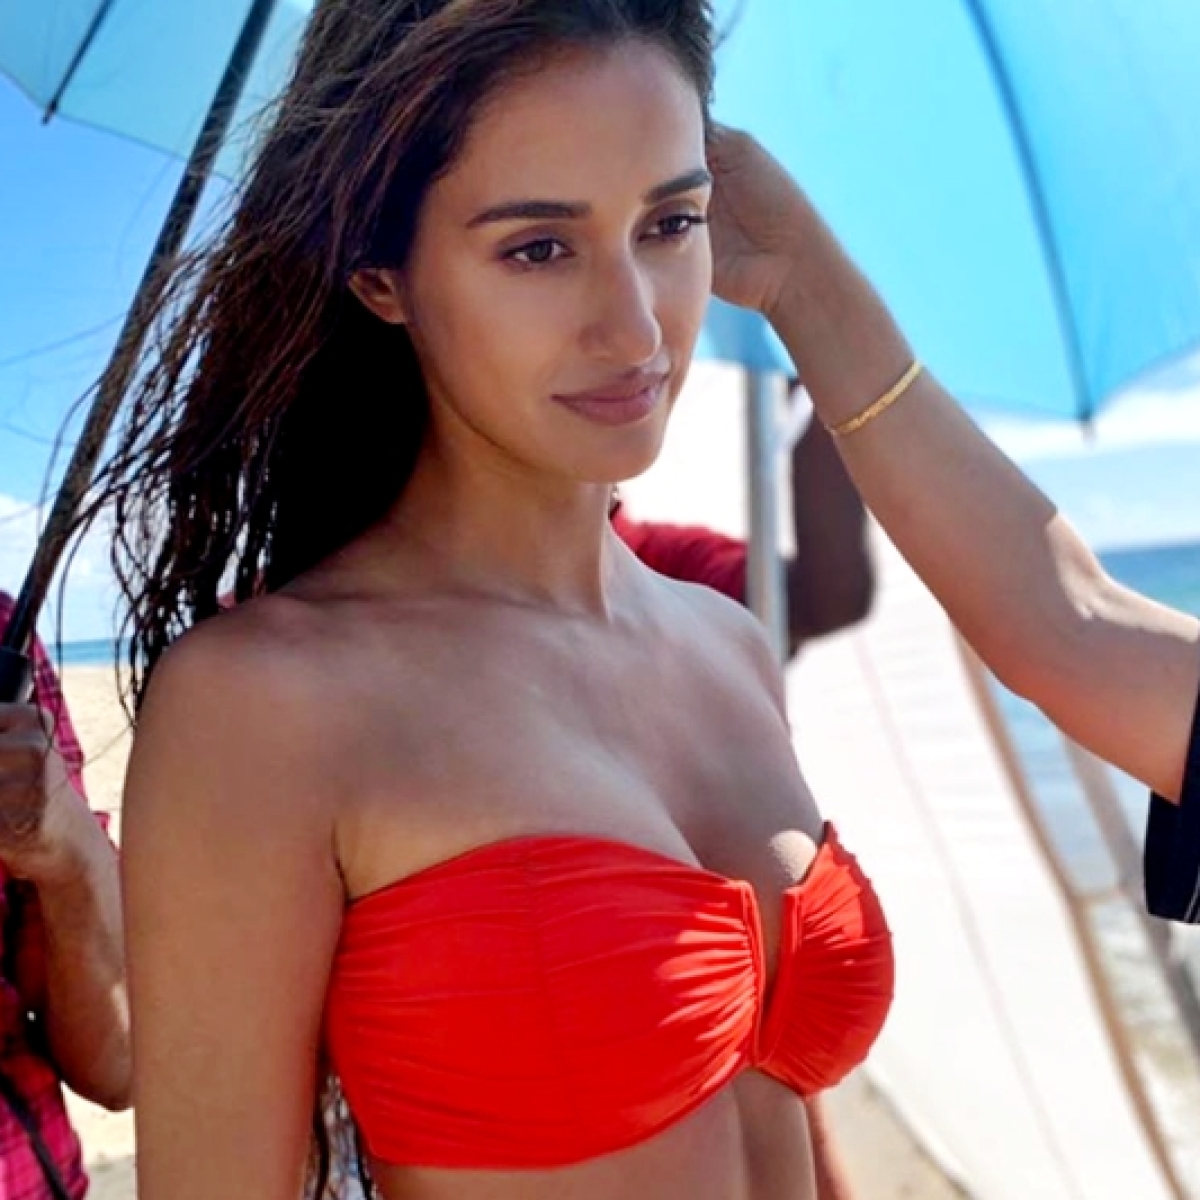 Disha Patani's sexy pictures flaunting a hot red bikini will drive away your Monday blues